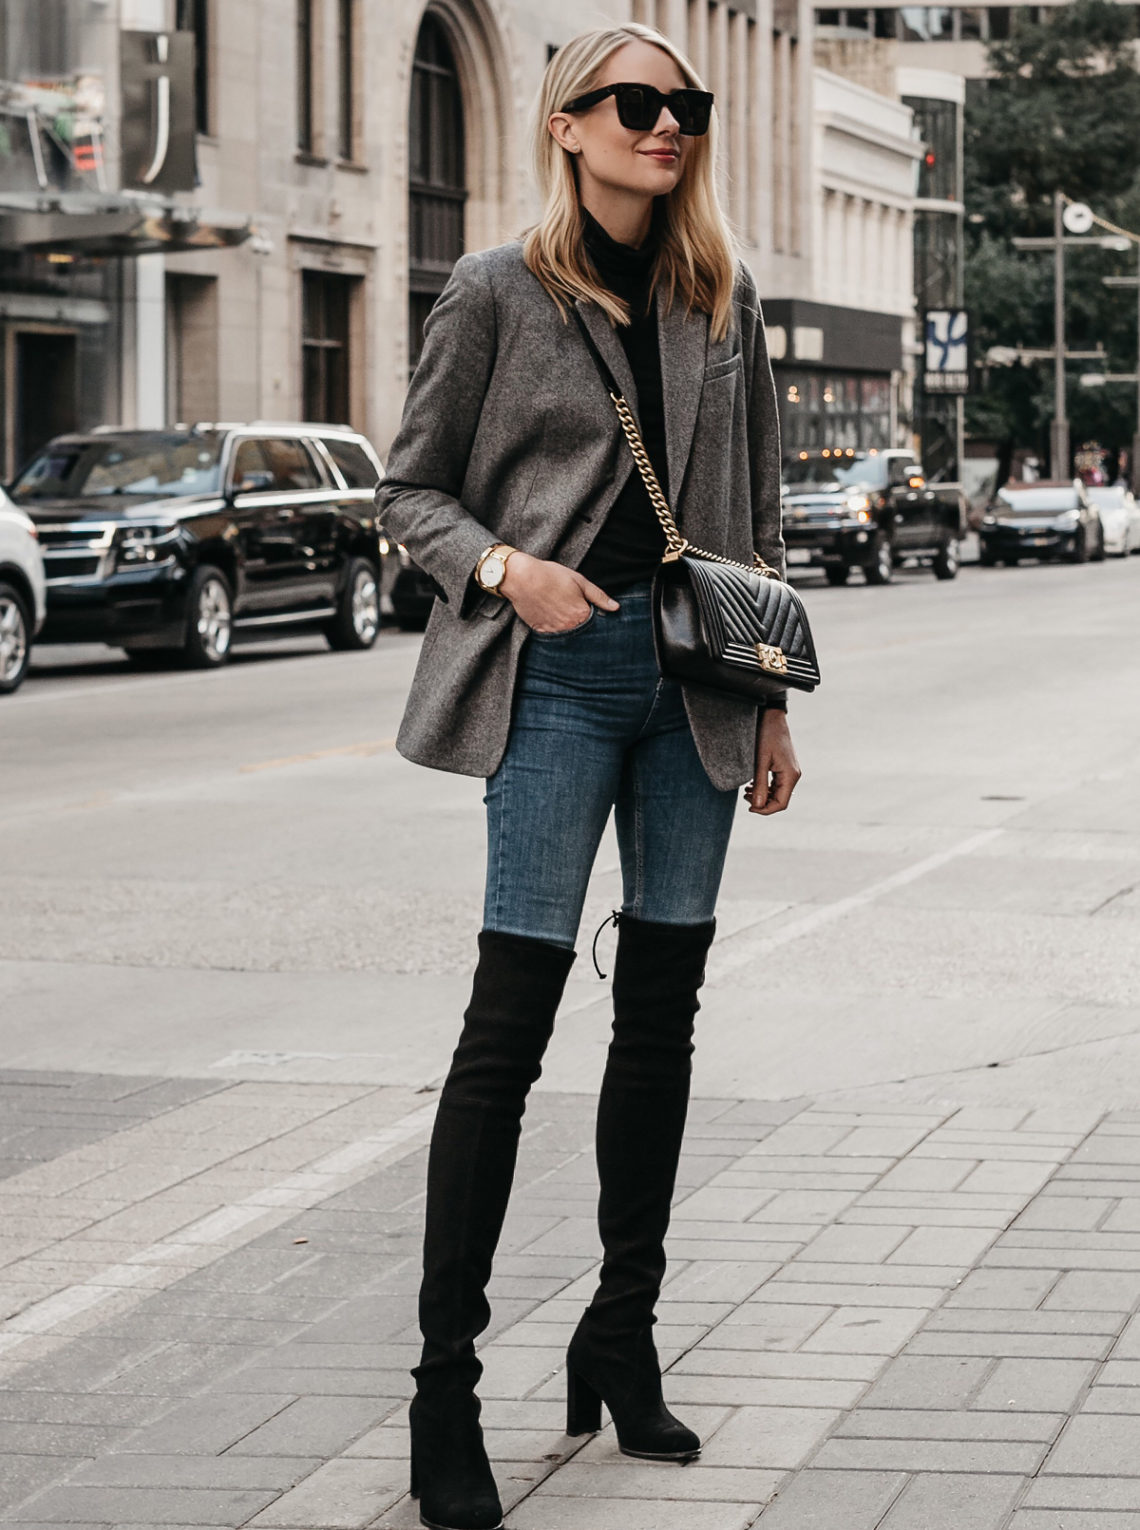 Blonde Woman Wearing Everlane Oversized Grey Blazer Denim Jeans Stuart Weitzman Over the Knee Black Boots Chanel Black Boy Bag Fashion Jackson Dallas Blogger Fashion Blogger Street Style